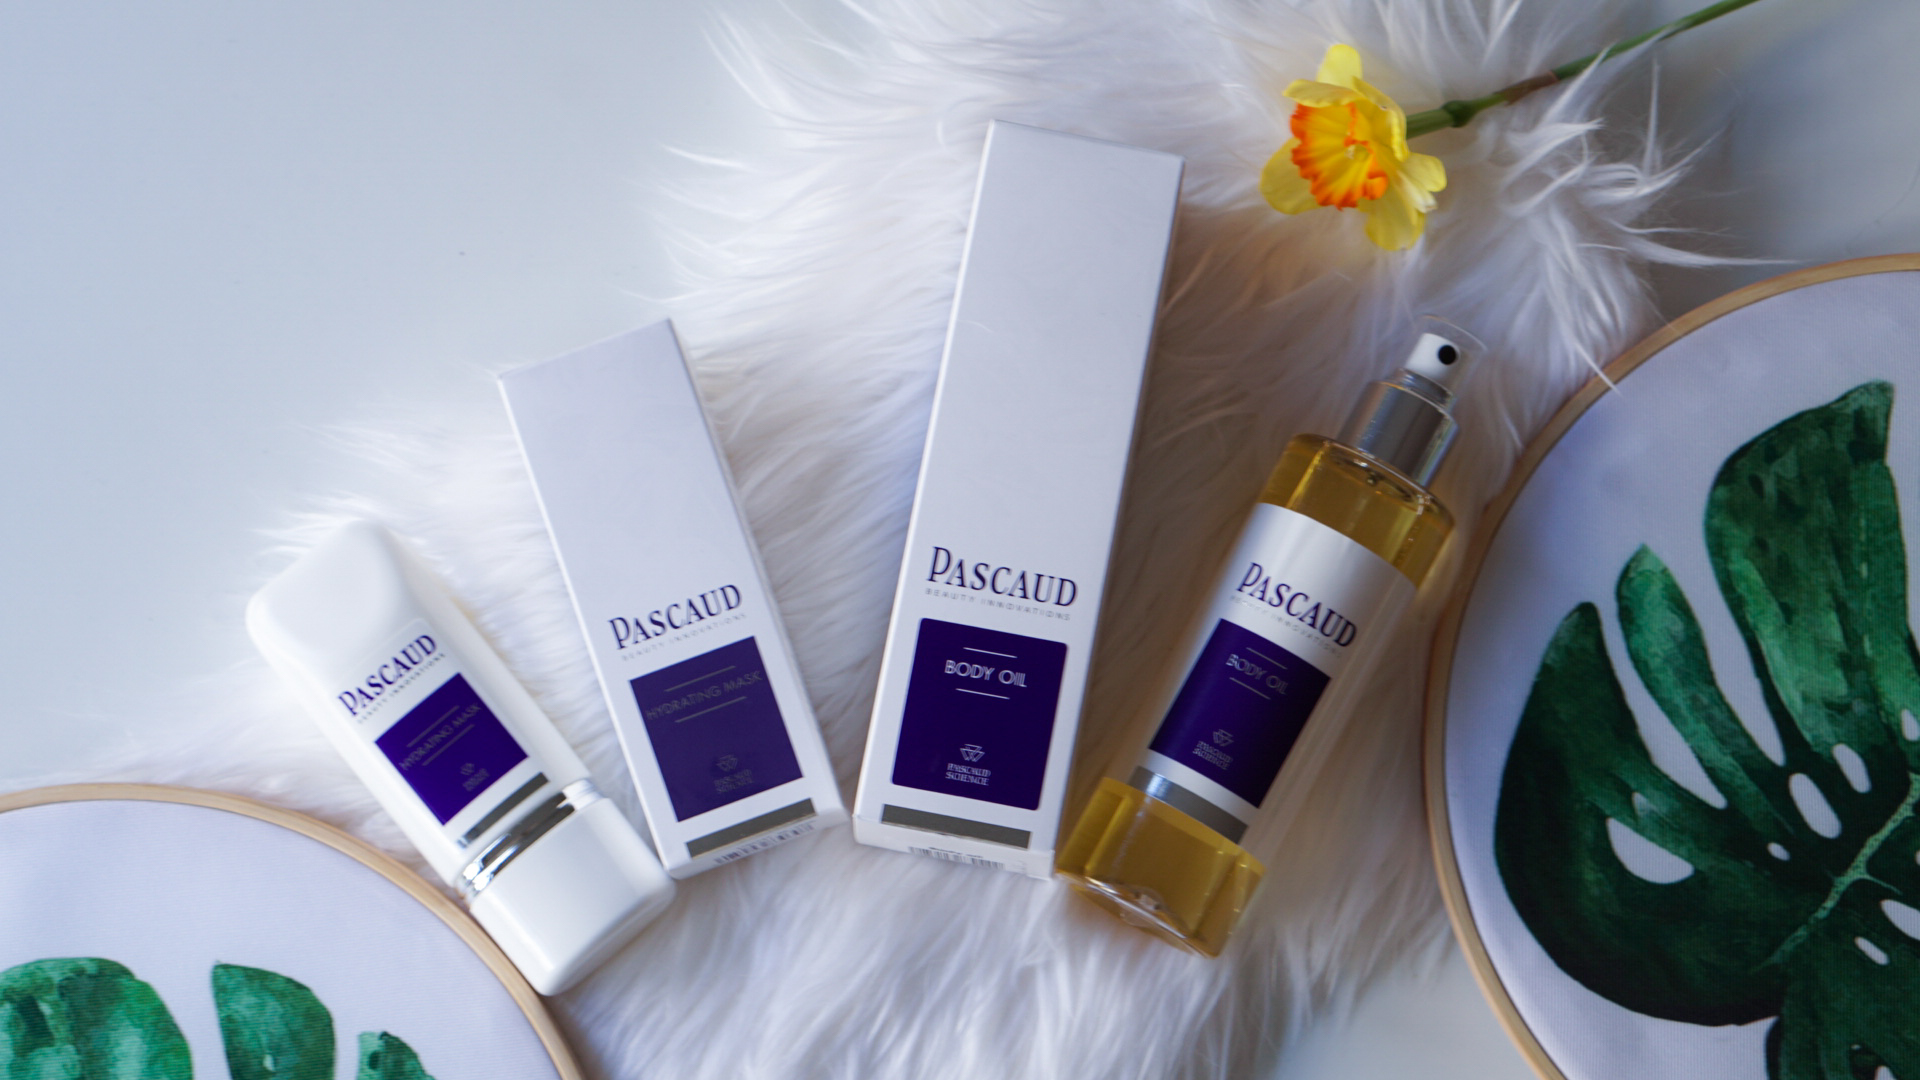 PASCAUD BODY OIL & HYDRATING MASK